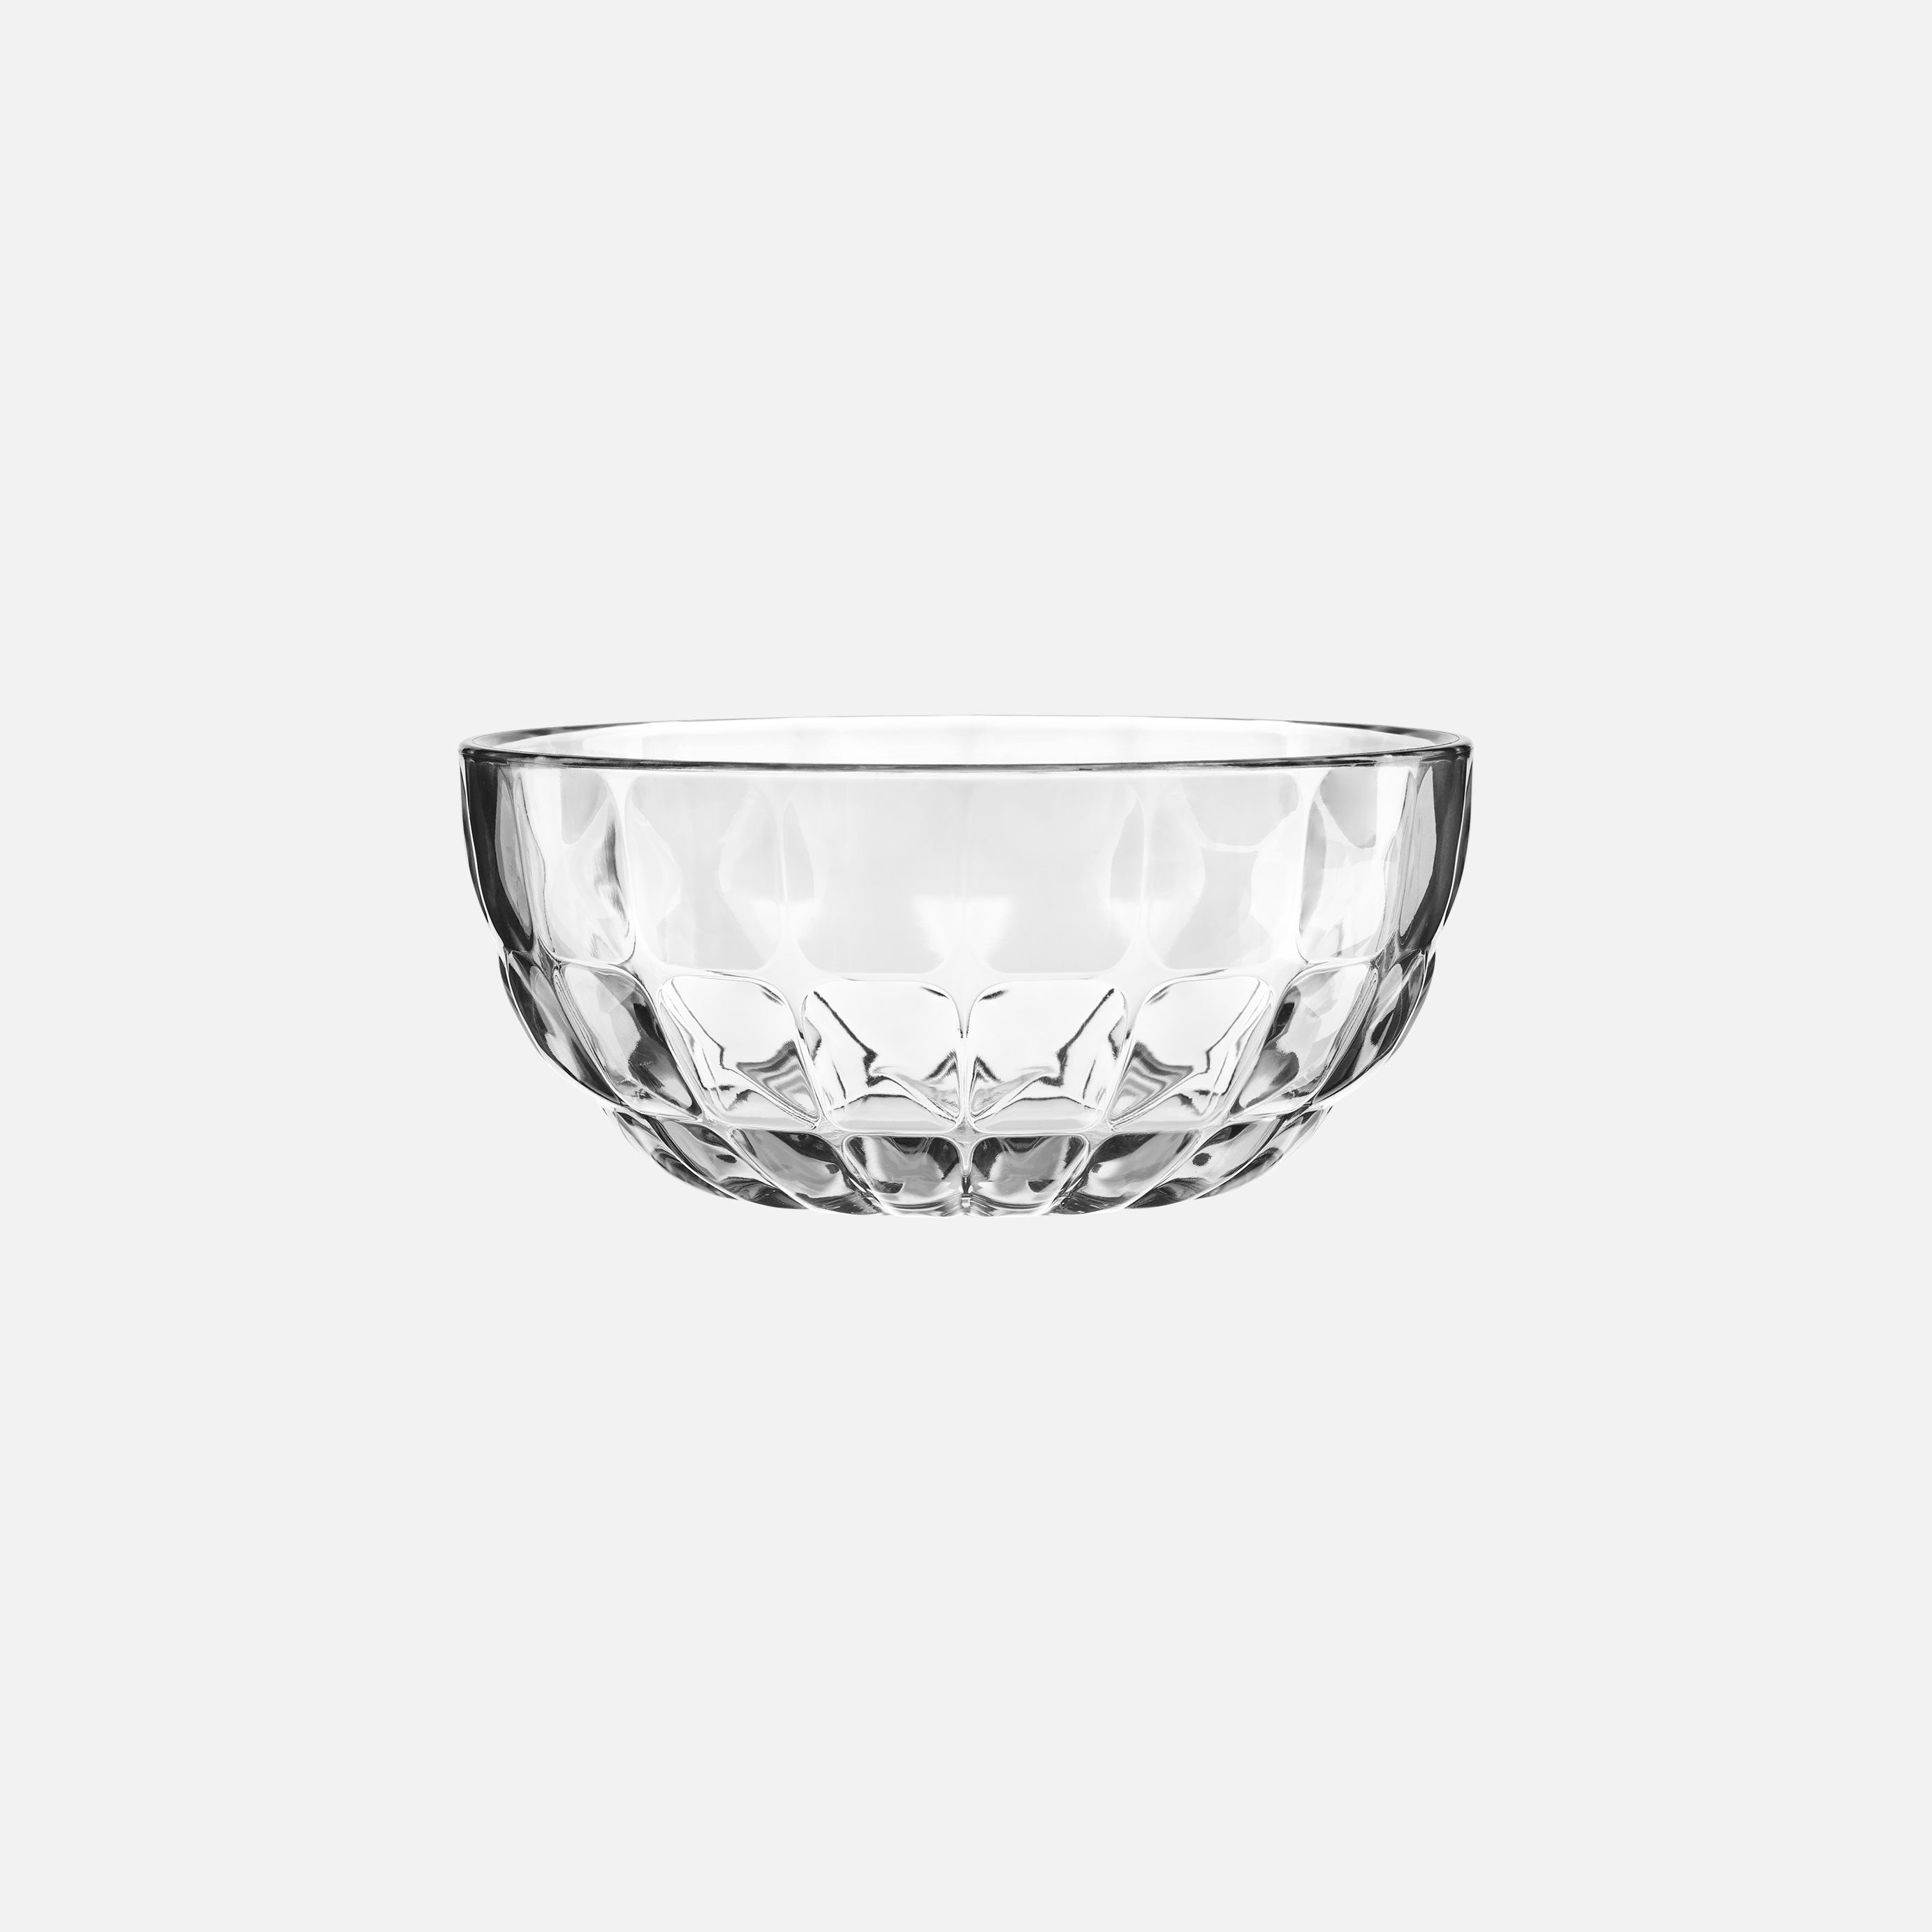 Mafra Dessert Bowl (Without Foot)300ml